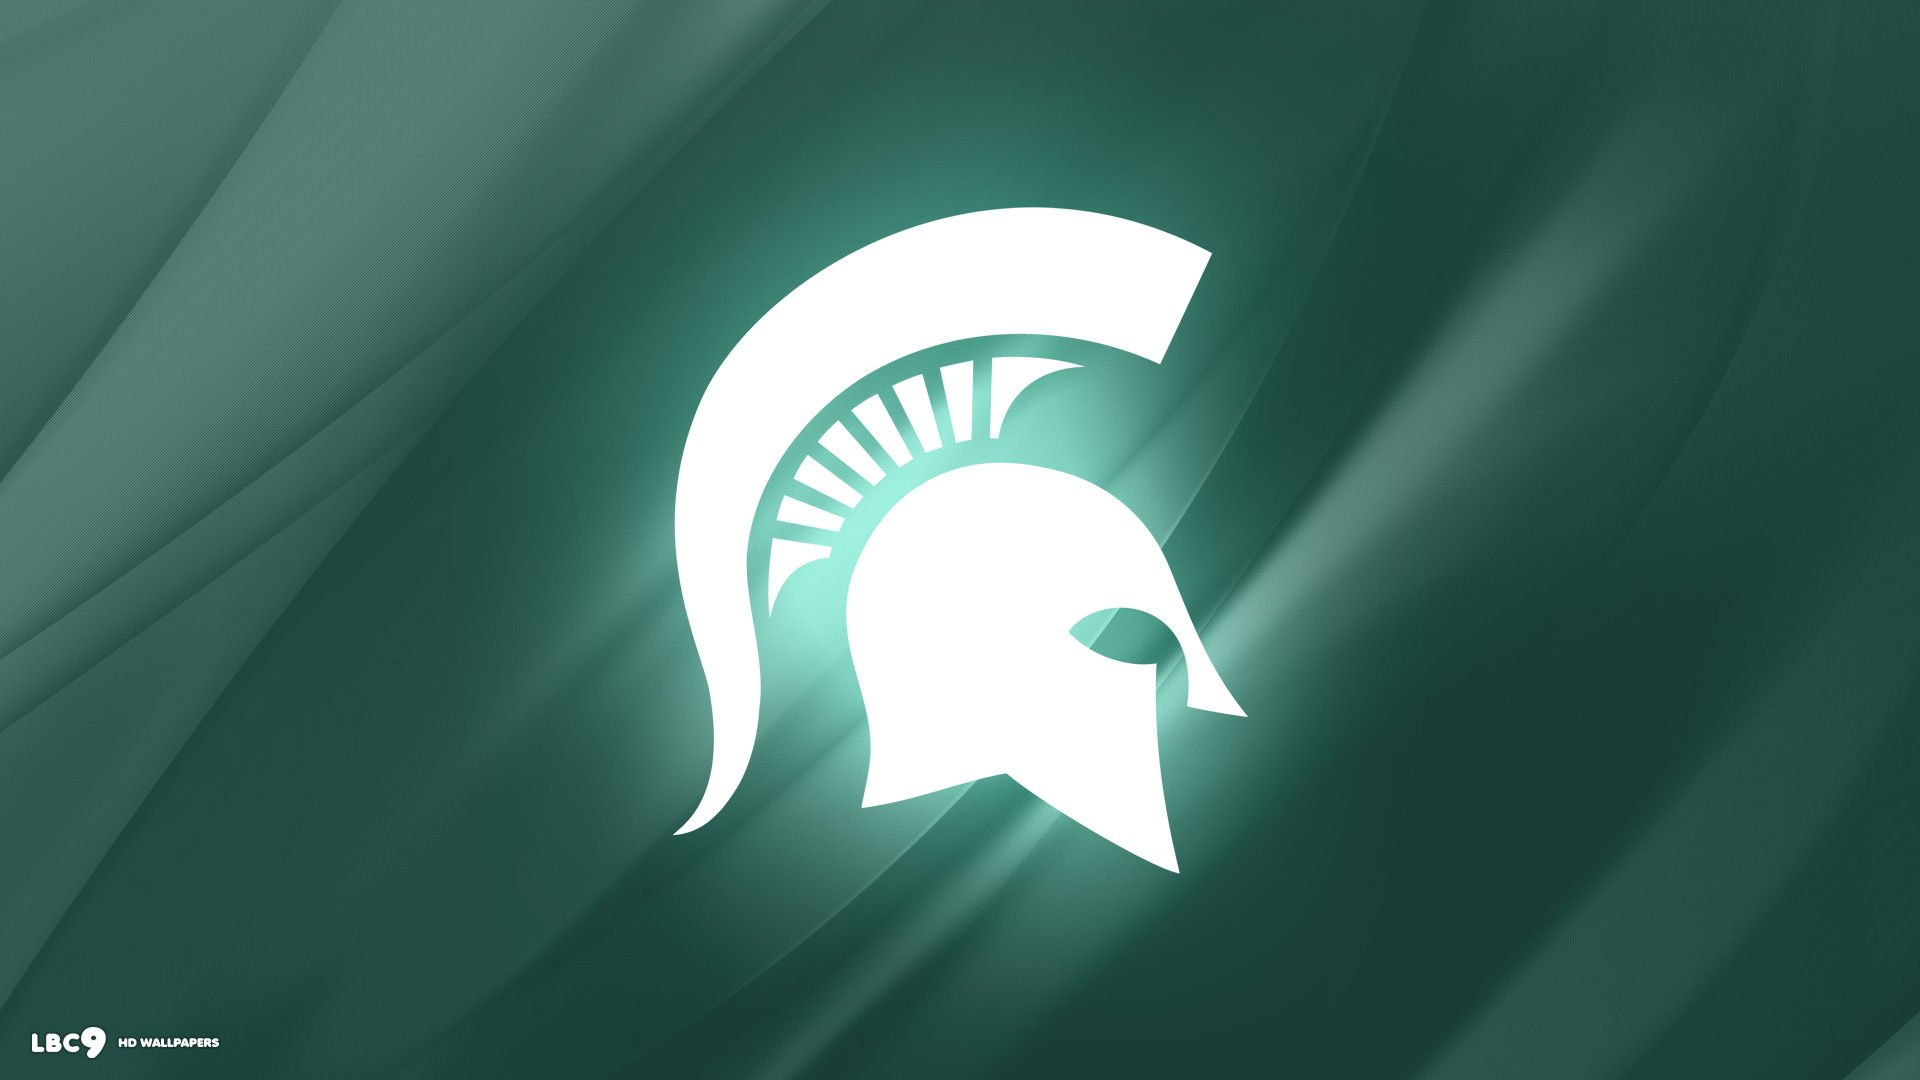 michigan state spartans Wallpaper by lbc9net by maguzzcom 1920x1080